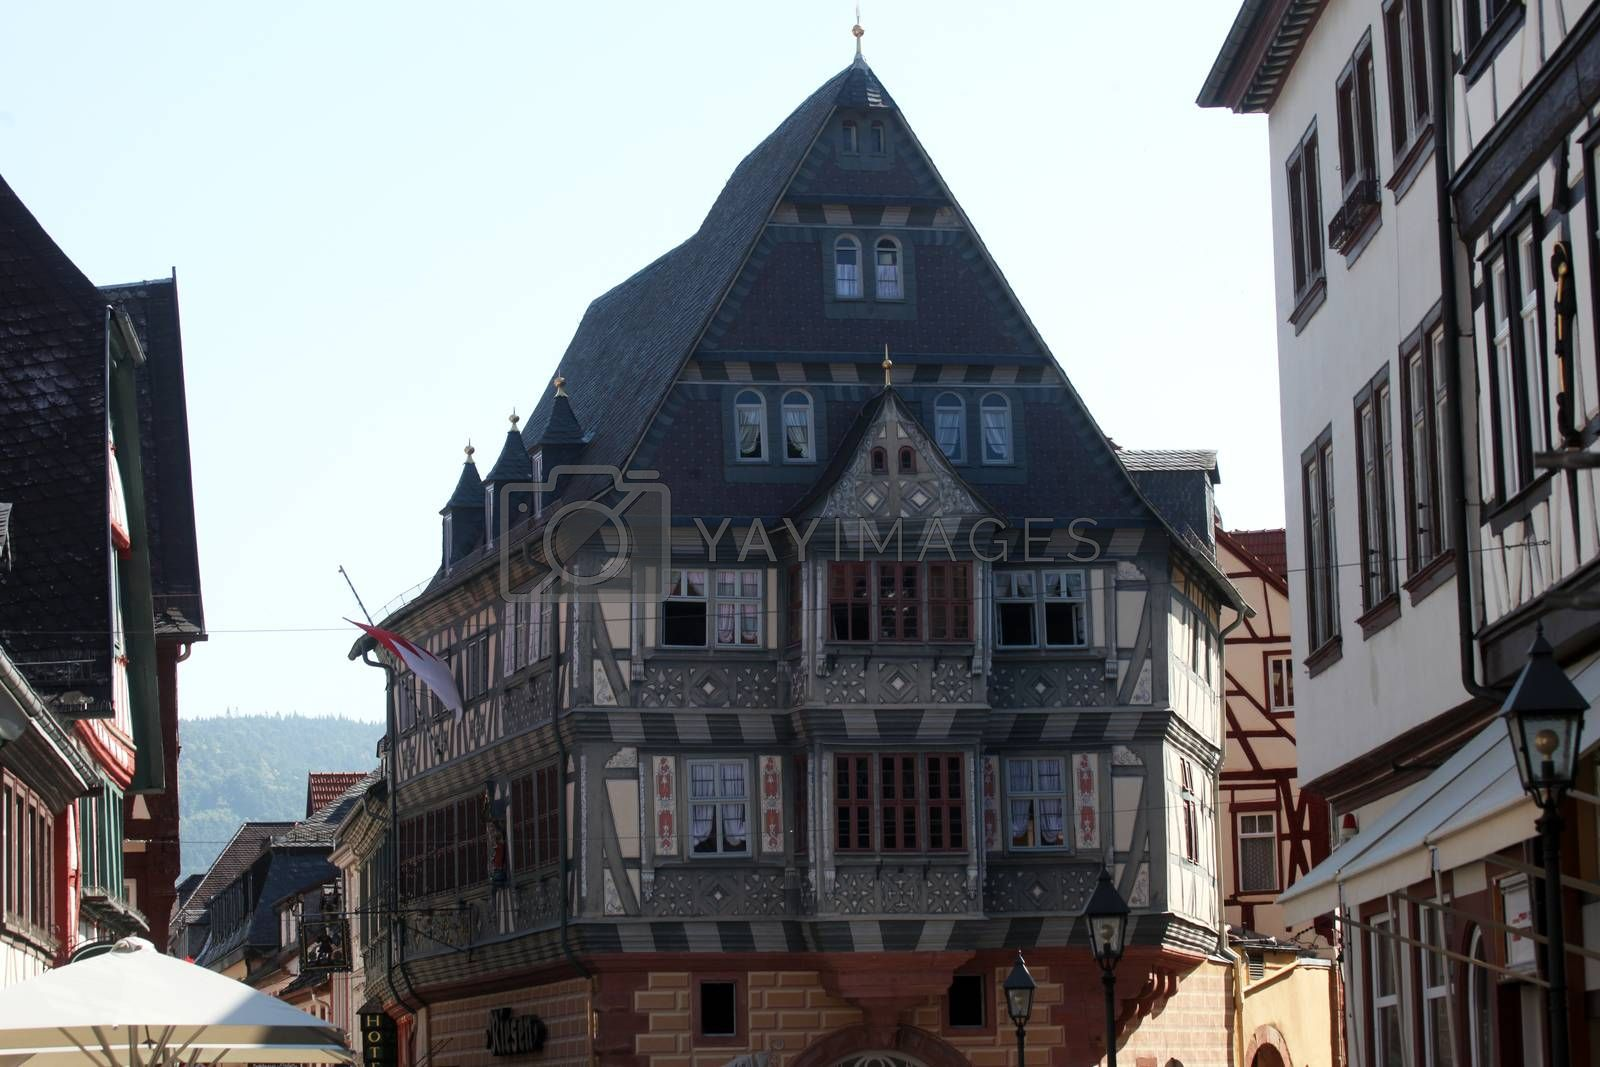 Half-timbered old house in Miltenberg, Germany